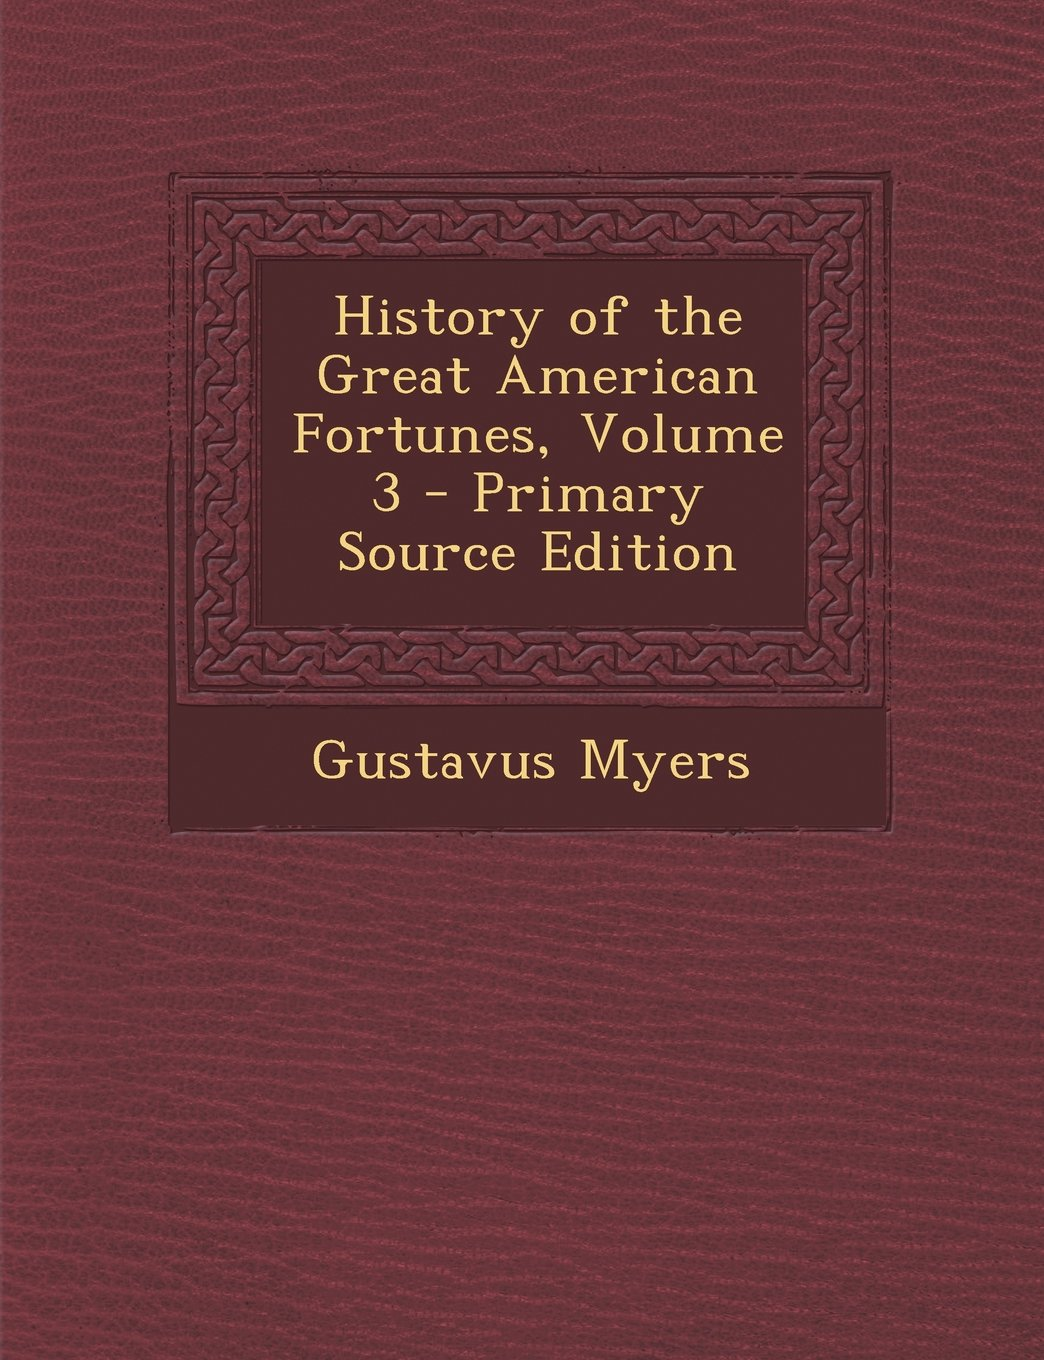 History of the Great American Fortunes, Volume 3 - Primary Source Edition PDF